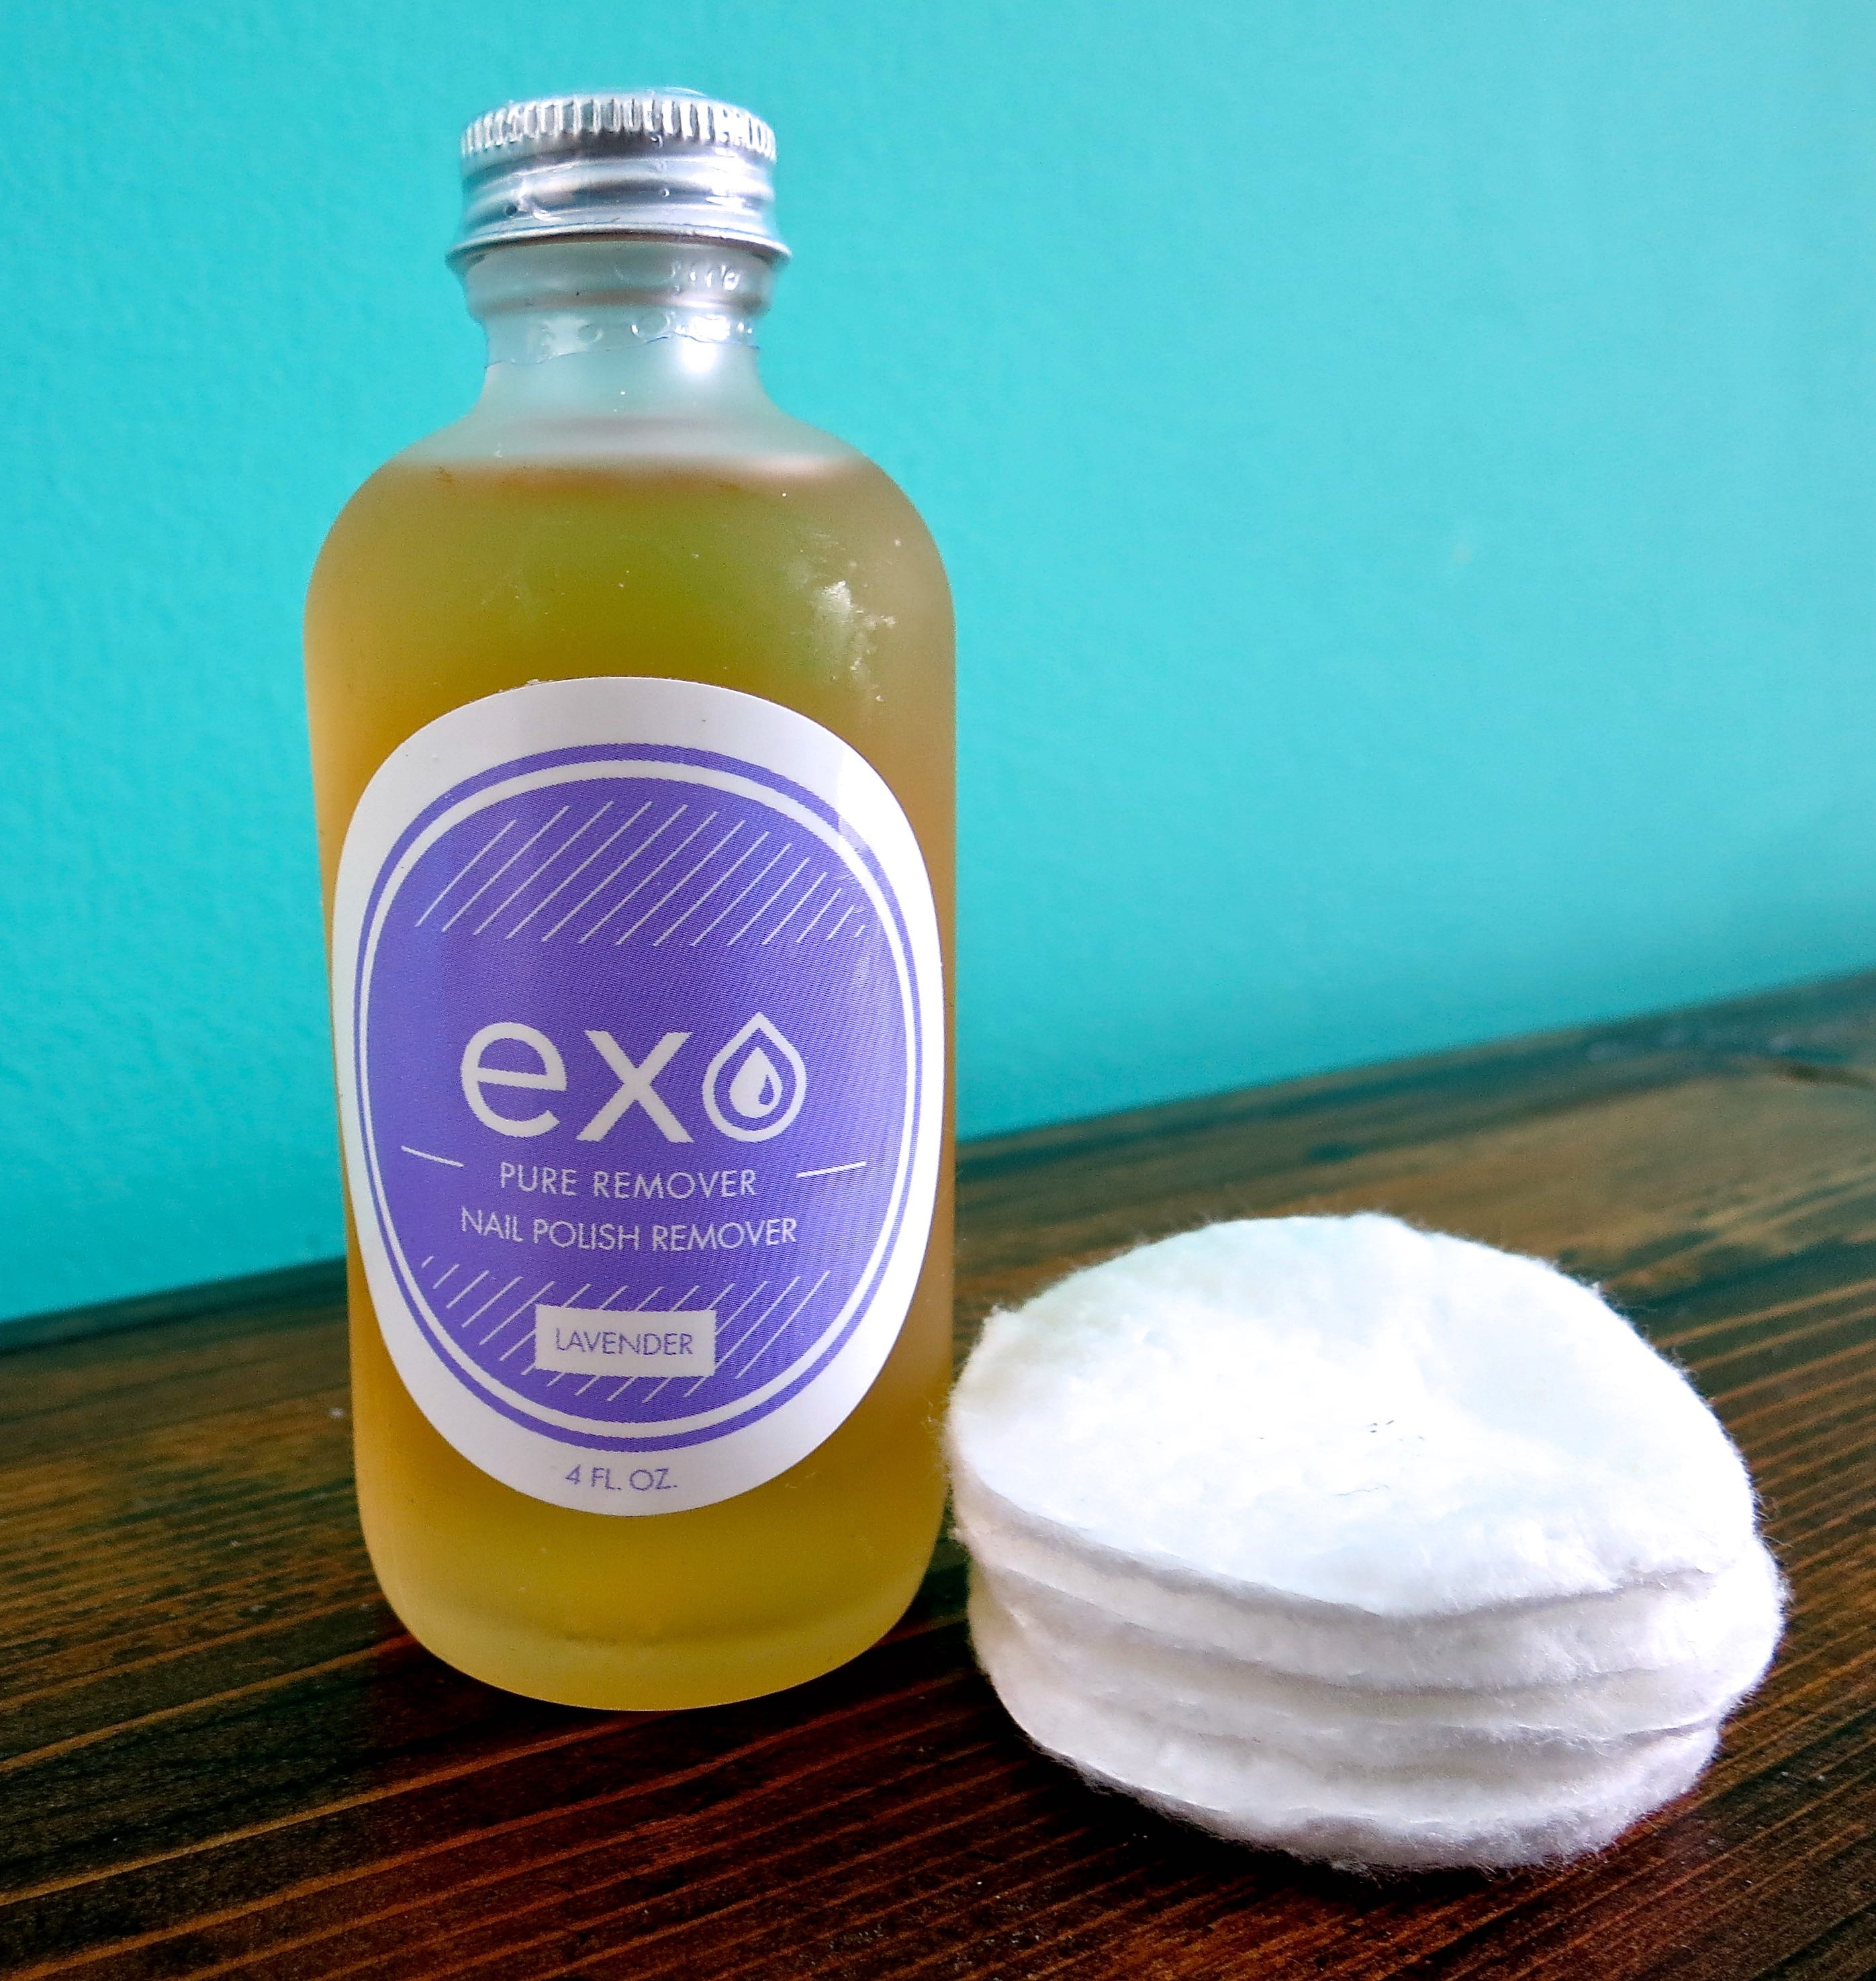 Cruelty Free Favorites: EXO Supply Nail Polish Remover – Pretty Harmless